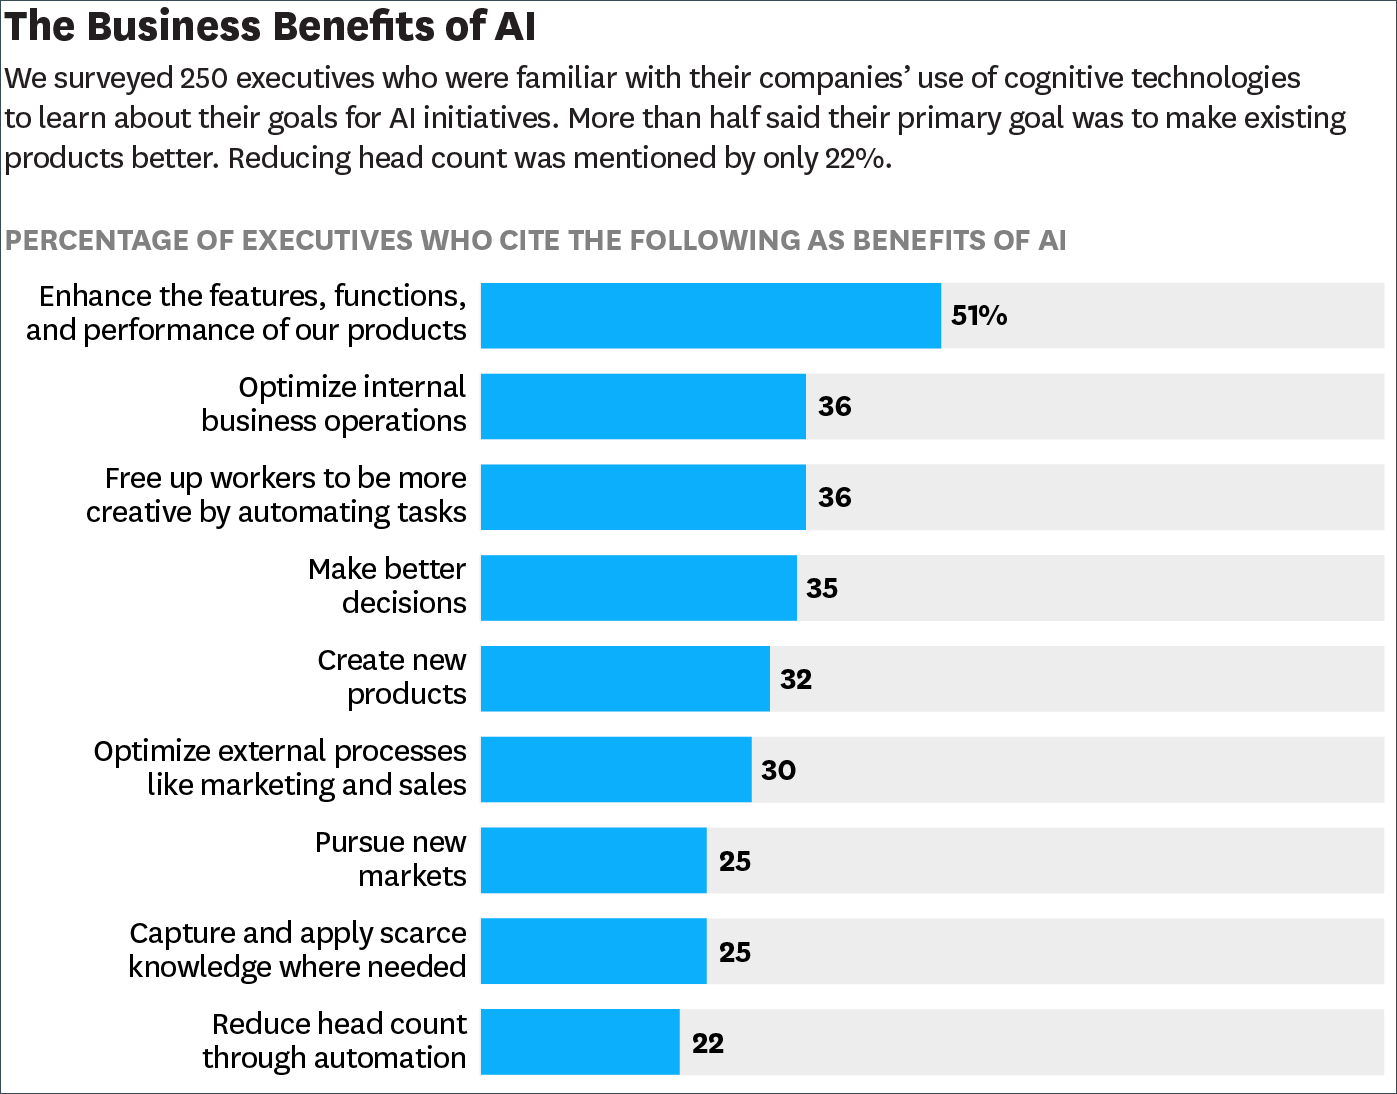 Graph showing the business benefits of AI; reduce head count was mentioned last